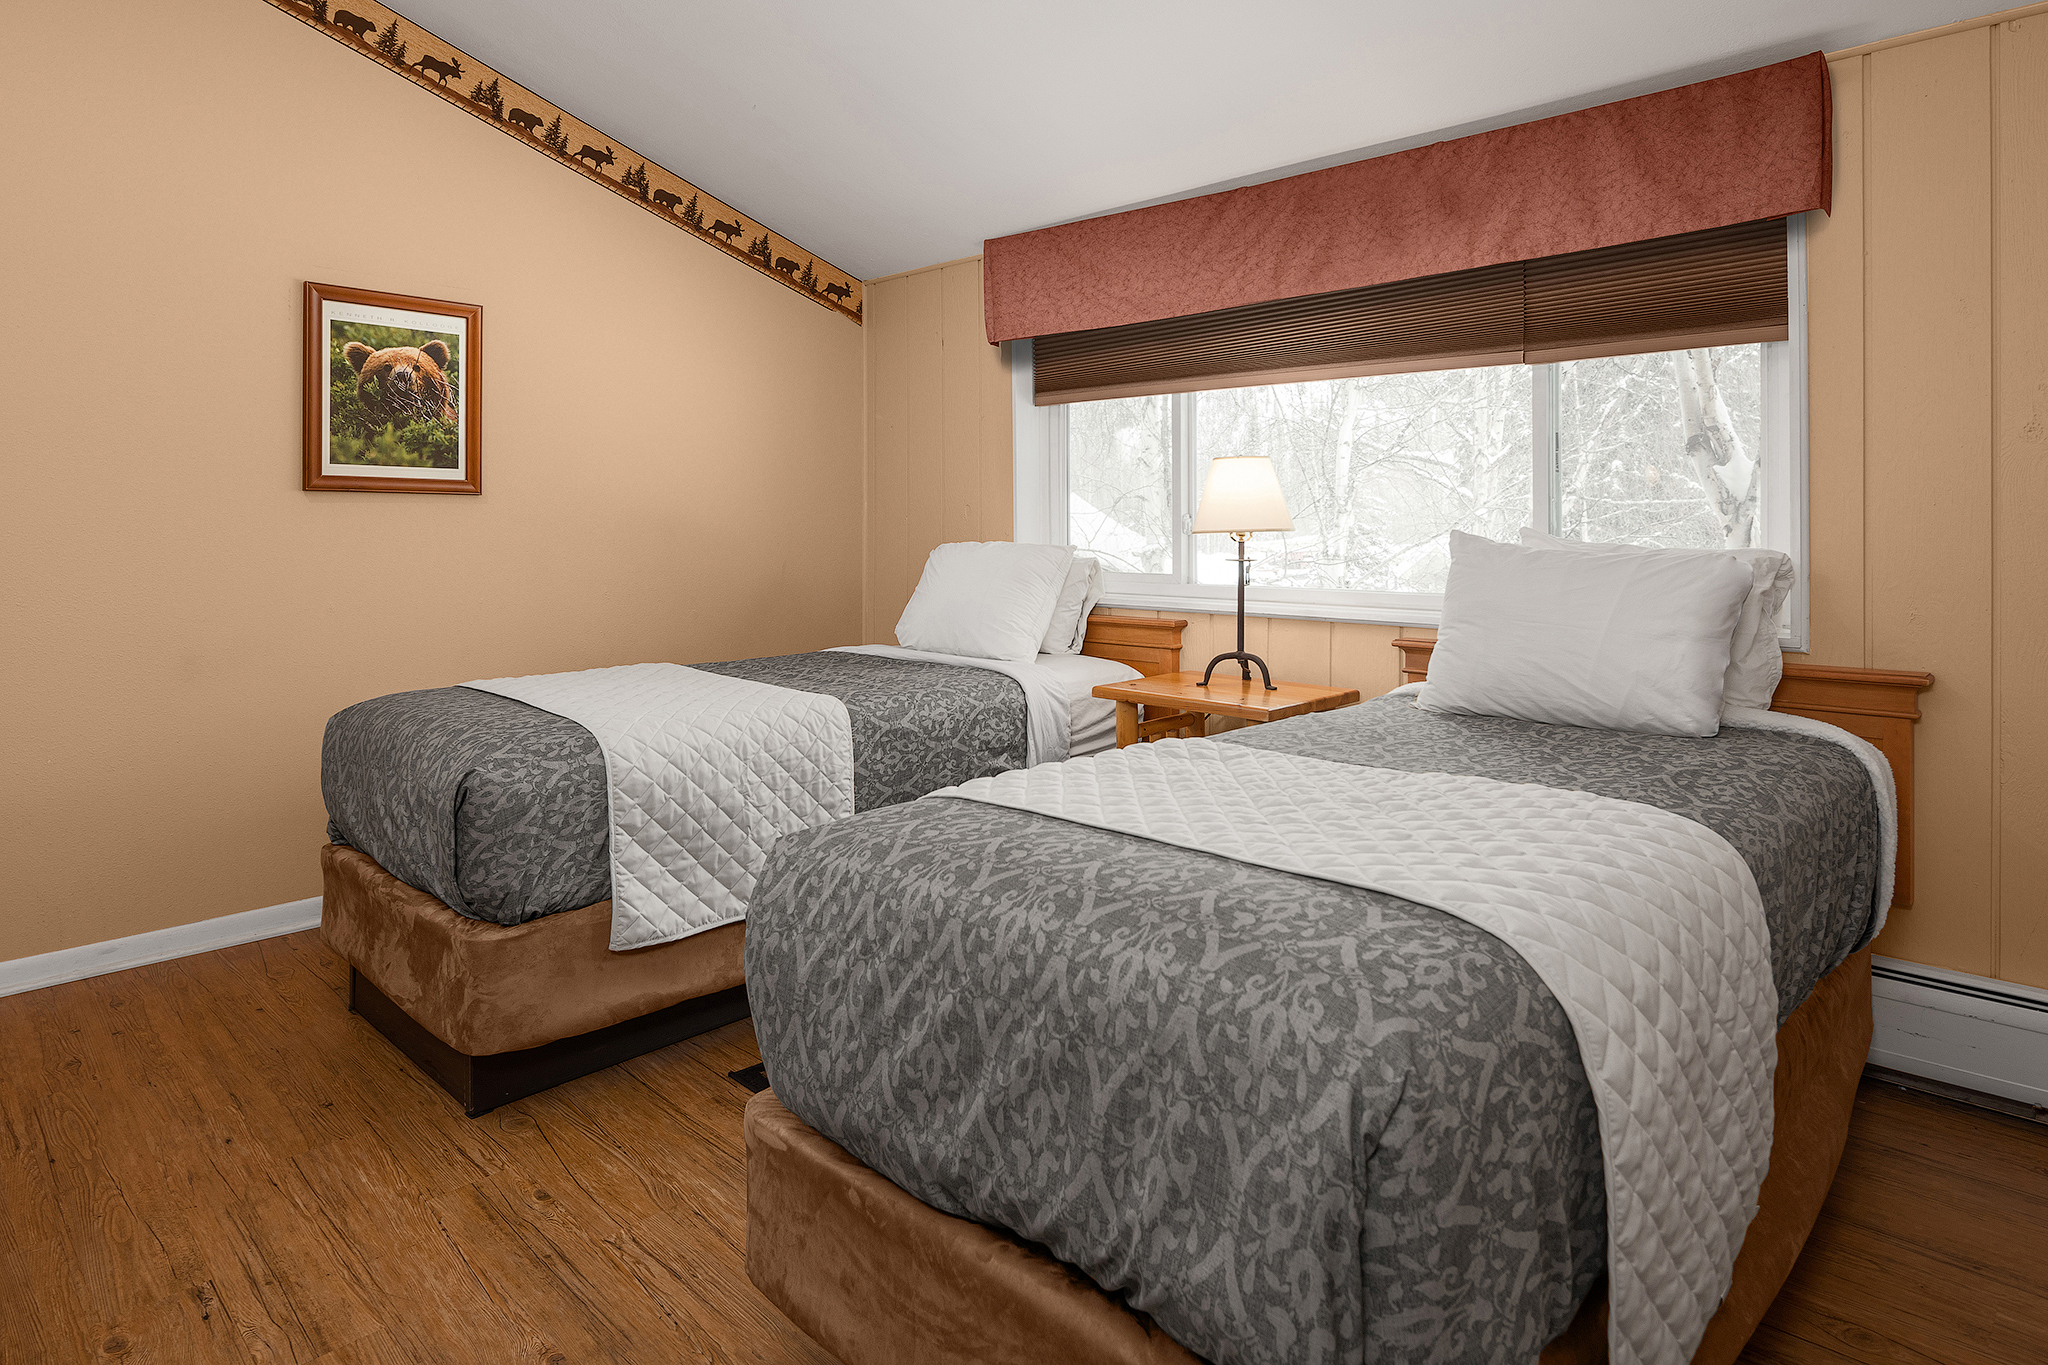 Bear Family Suite Interior - Additional Room 2 Twin Size Beds